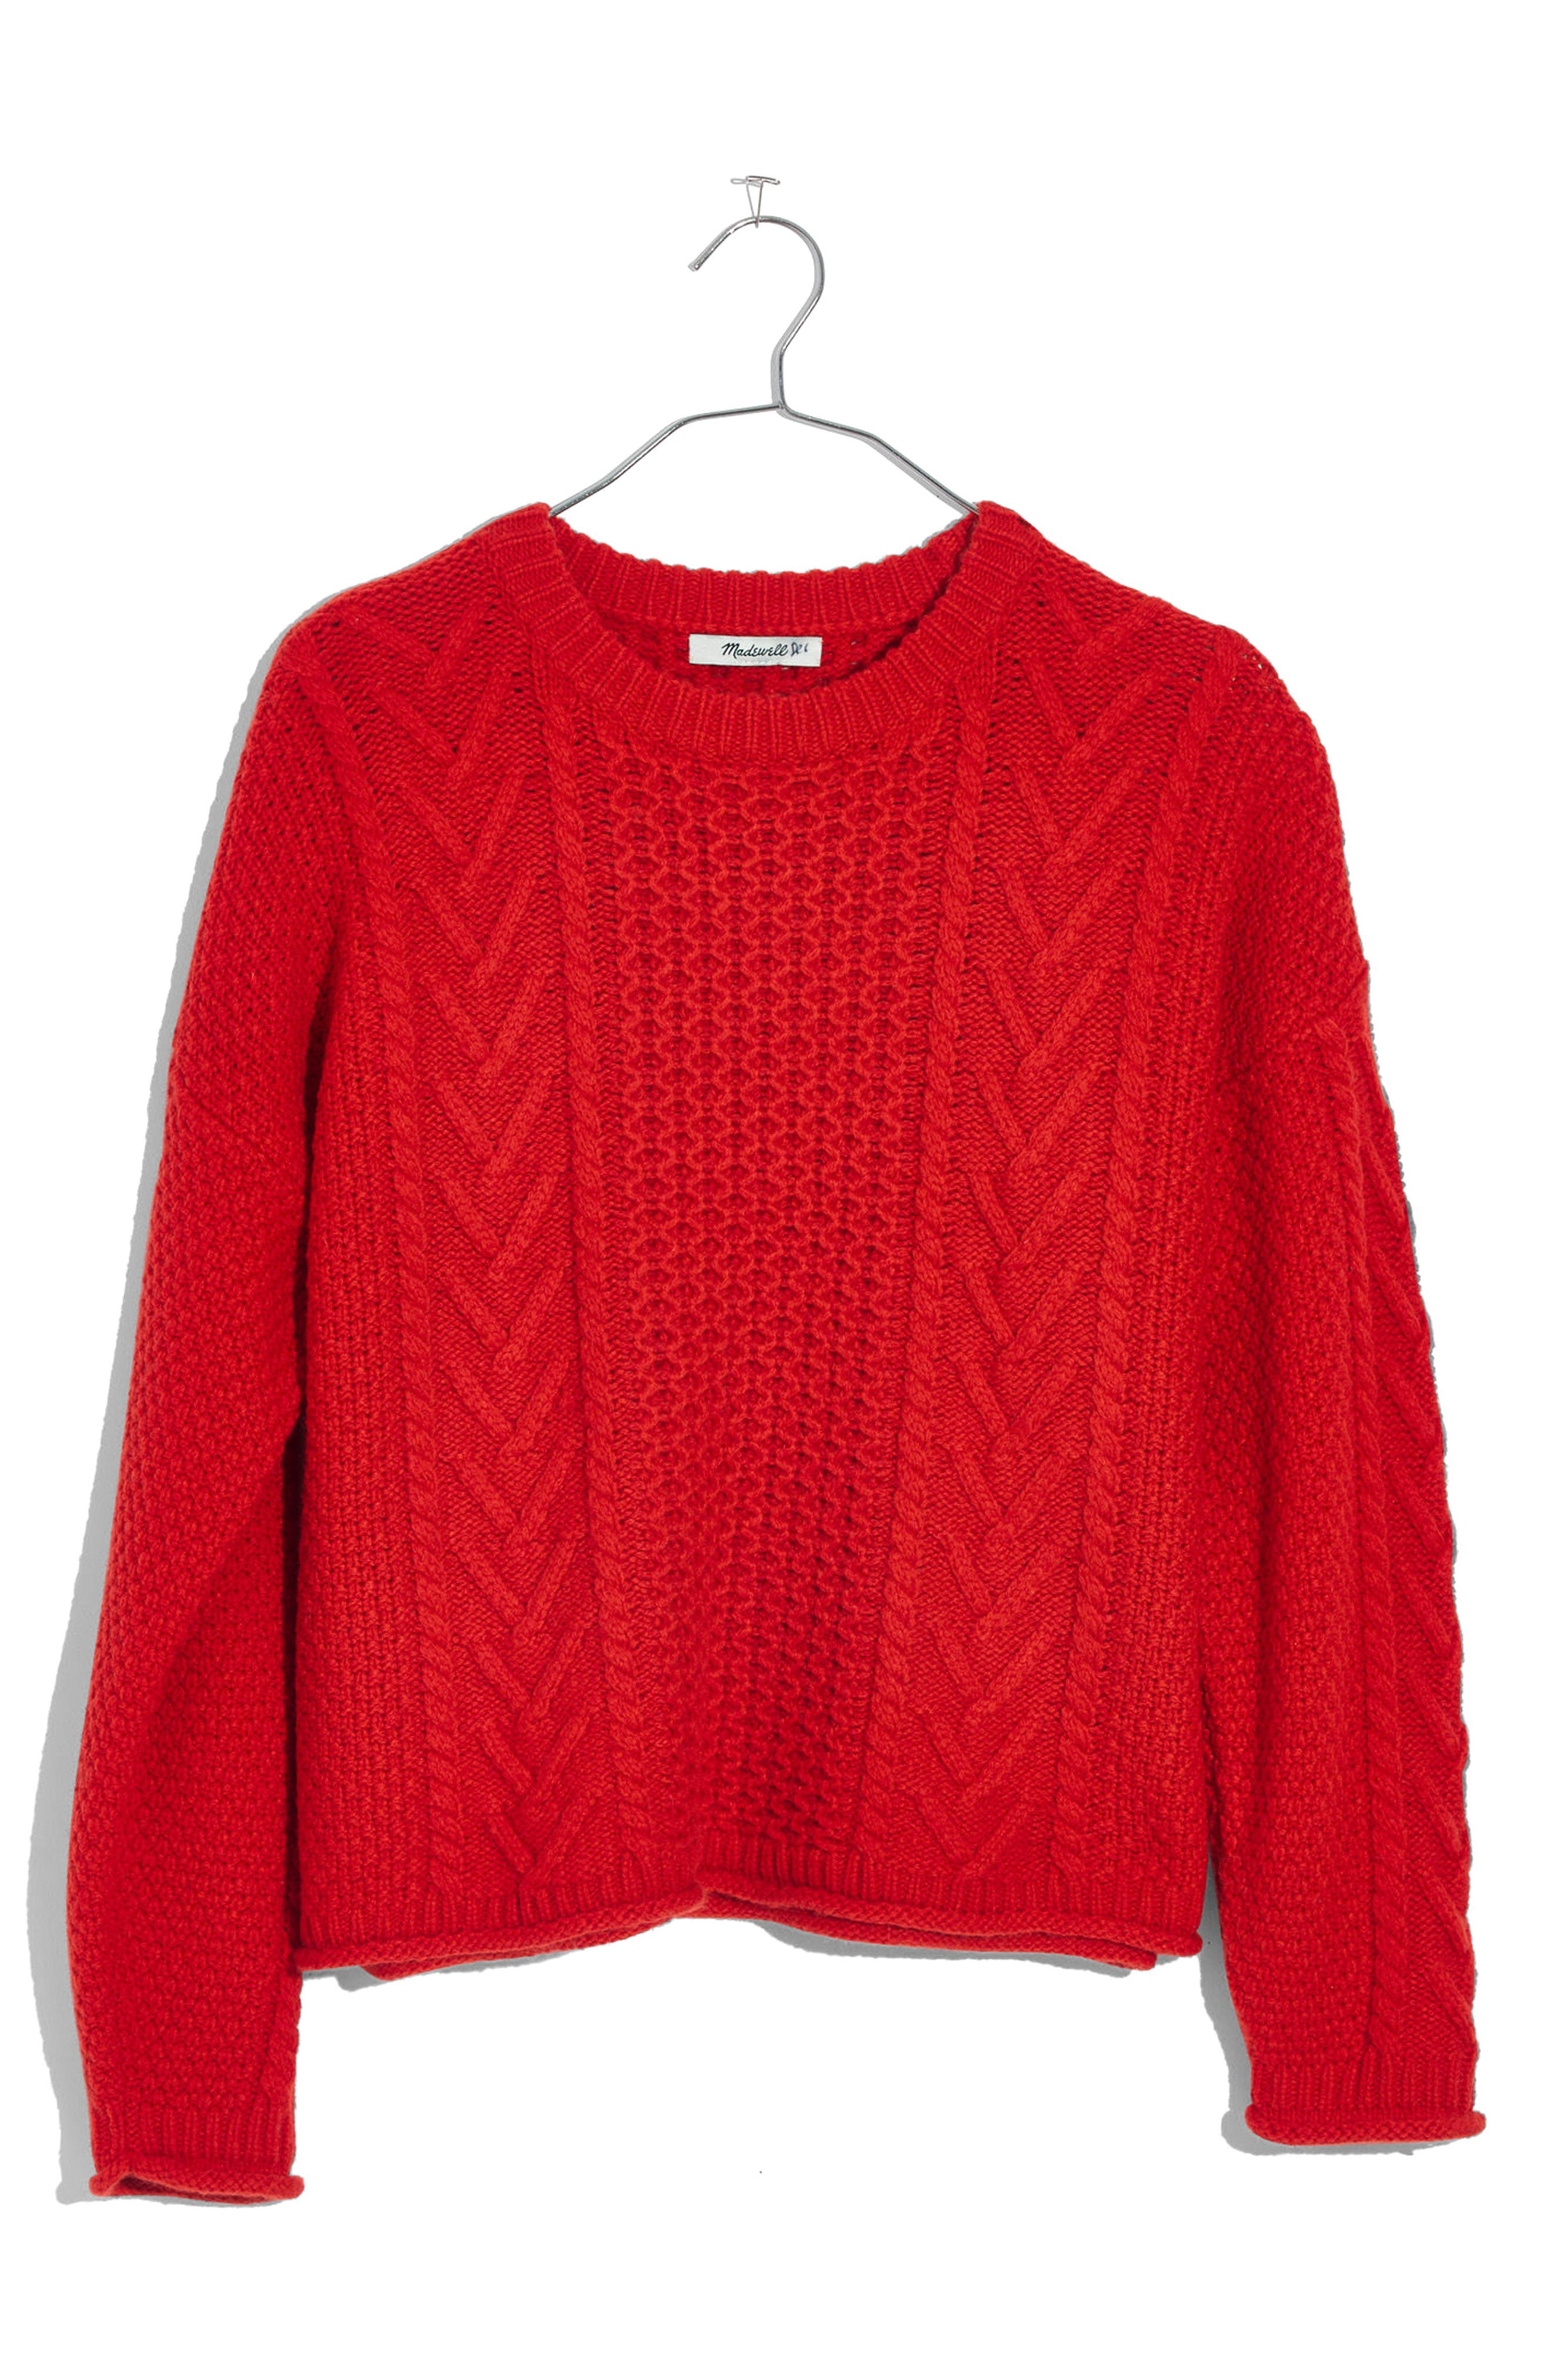 Main Image - Madewell Cable Knit Pullover Sweater